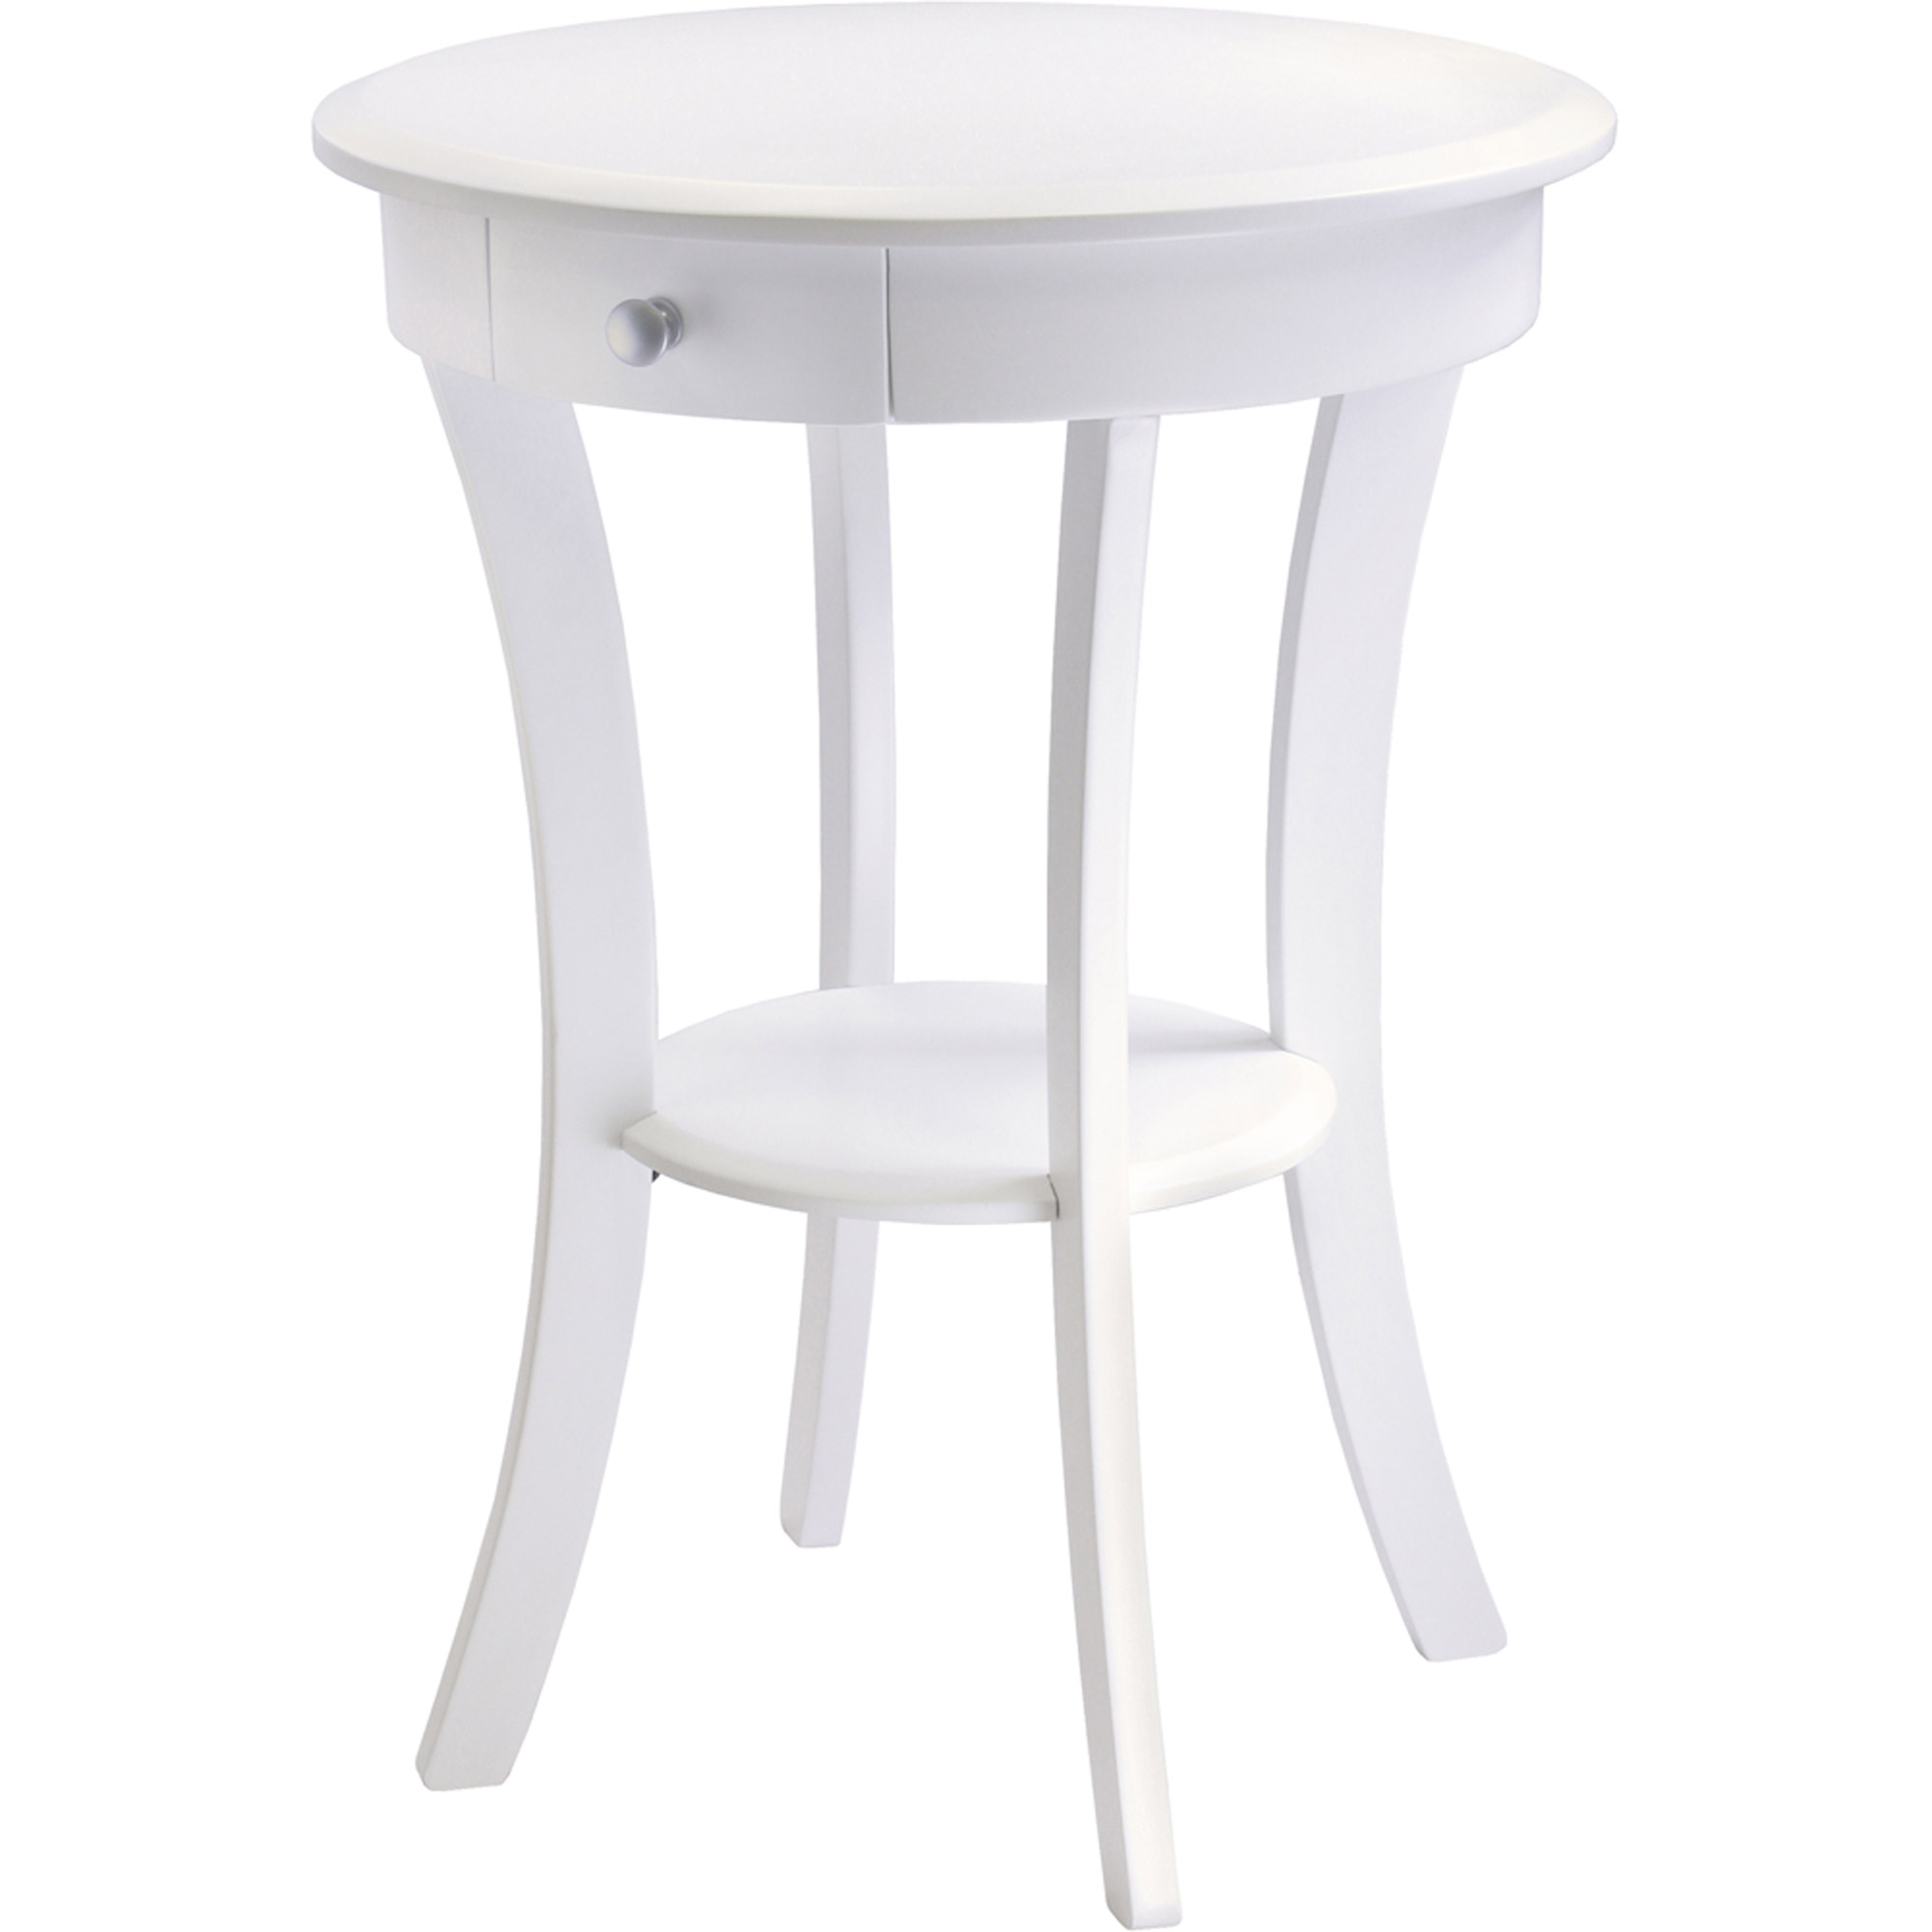 sasha round accent table white side inch pottery barn tabletop gateleg drop leaf laminated cotton tablecloth wooden trestle short skinny jofran patio dining sets black mid century